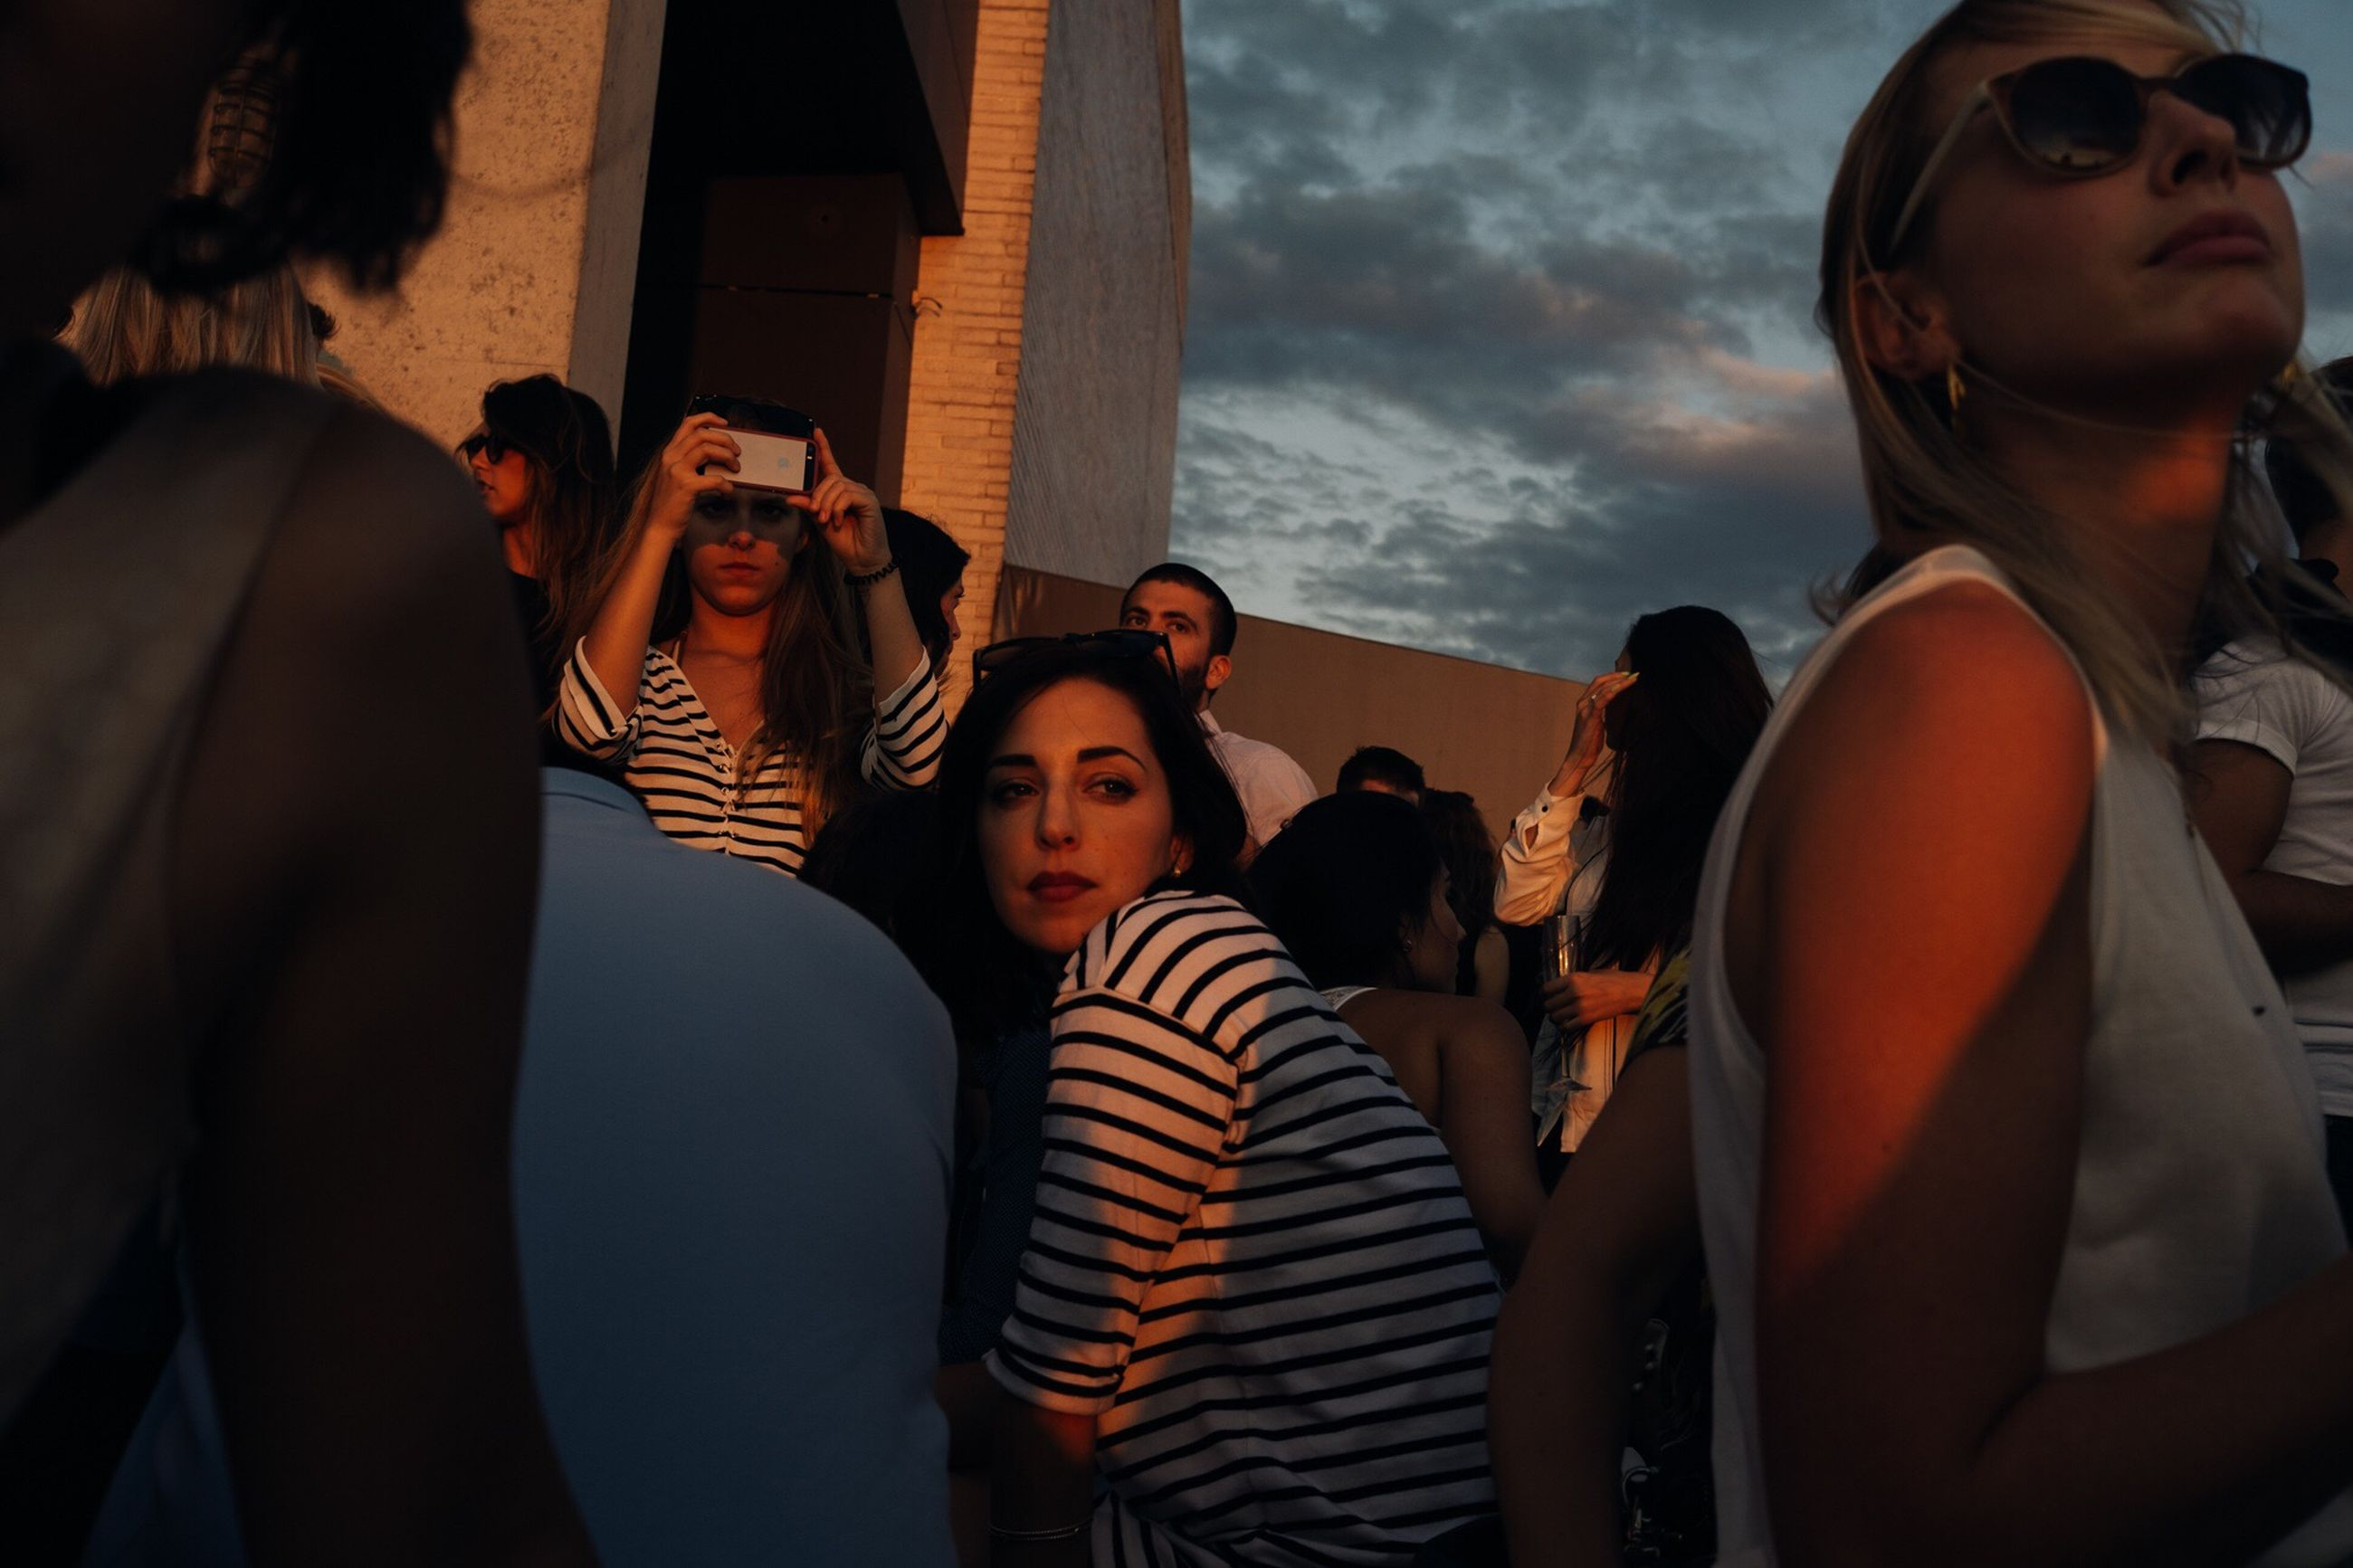 young adult, lifestyles, night, young women, hipster - person, party - social event, women, real people, sunset, celebration, friendship, togetherness, people, nightlife, sky, adult, outdoors, adults only